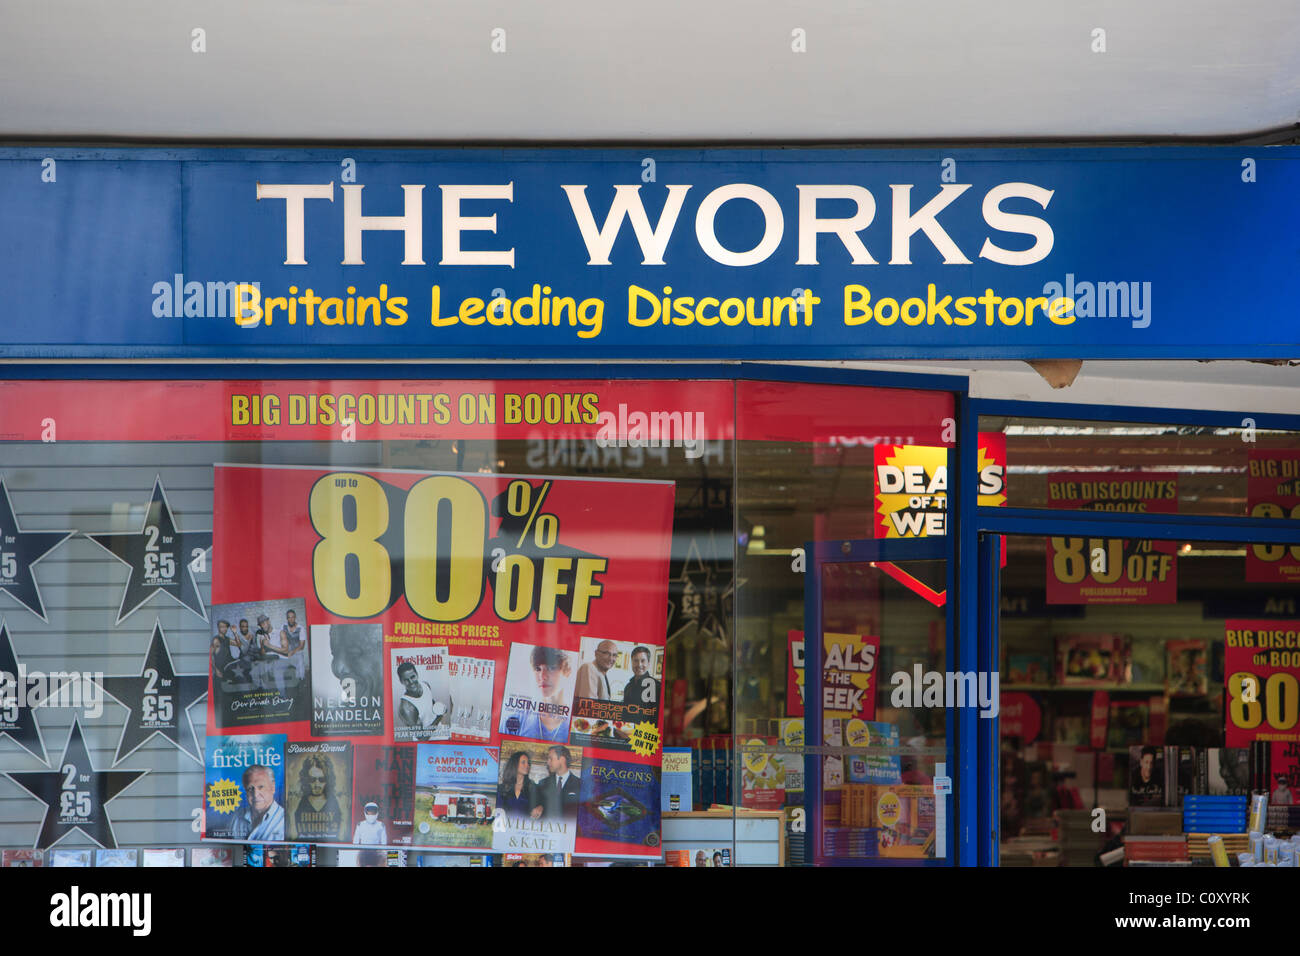 The Works discount store - Stock Image